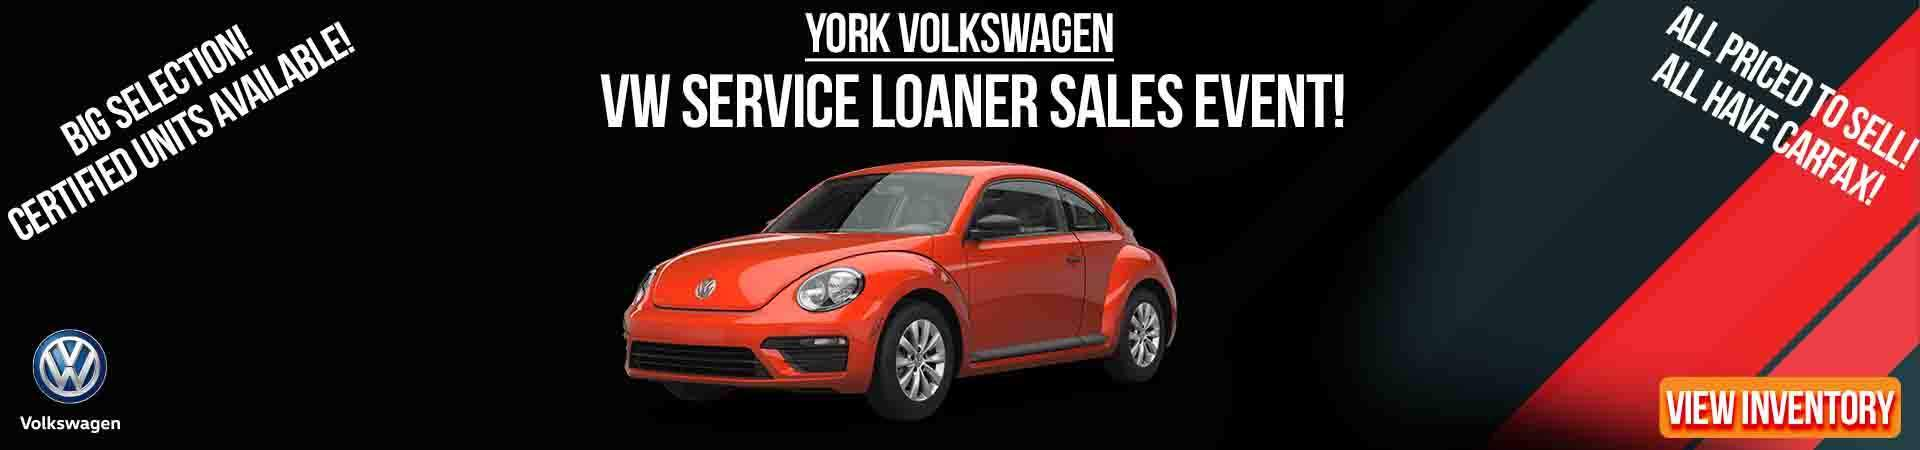 2016 Volkswagen Beetle Coupe 1.8T Classic W/NAVIGATION